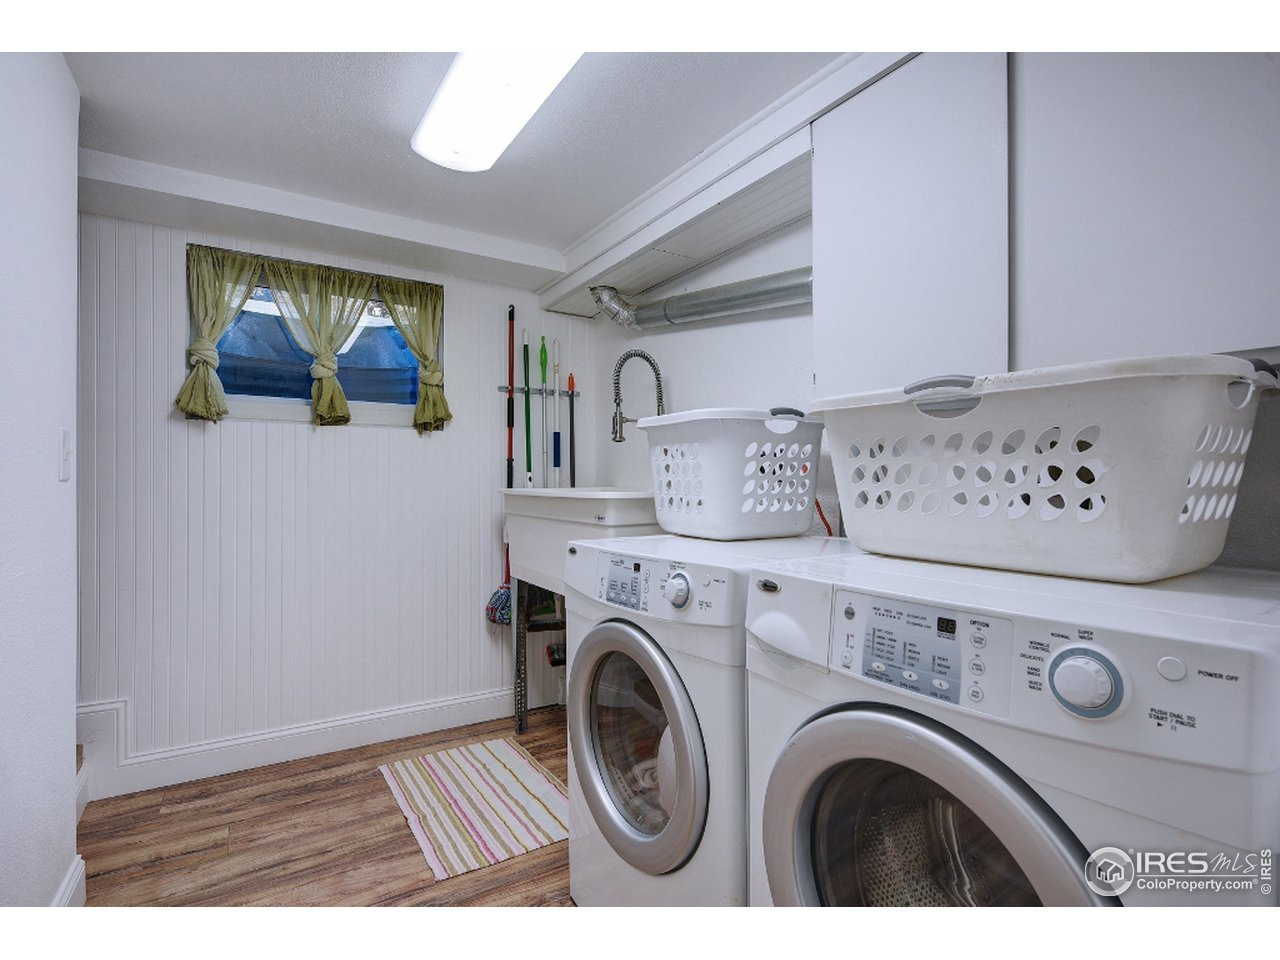 Great laundry room with laundry tub & storage